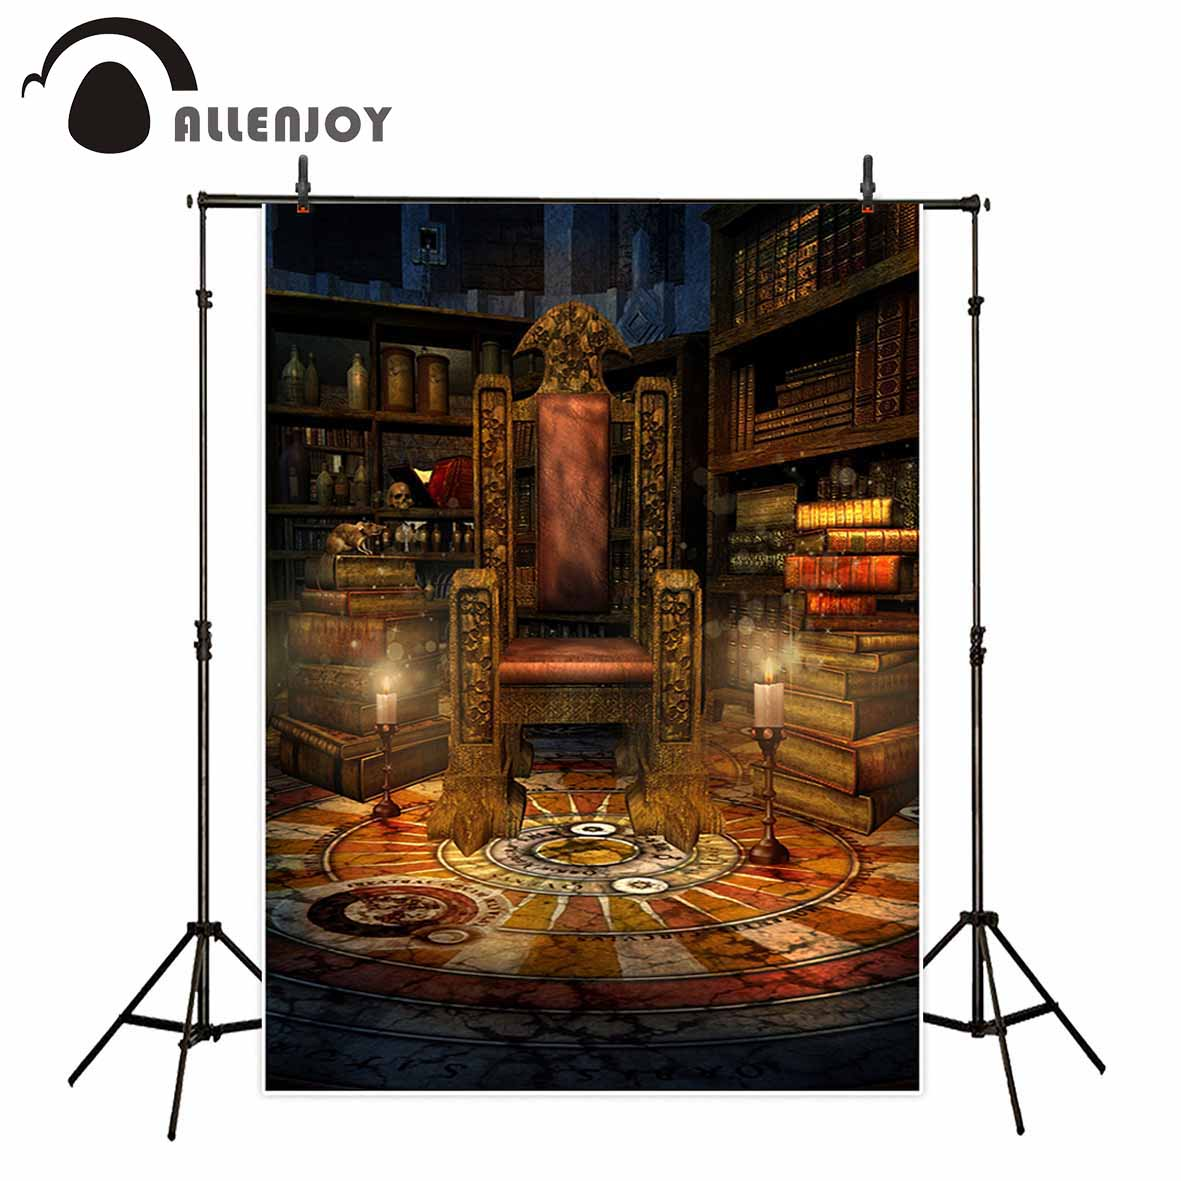 Allenjoy photography backdrop Vintage luxurious throne books candle Halloween background for photo studio camera fotografica